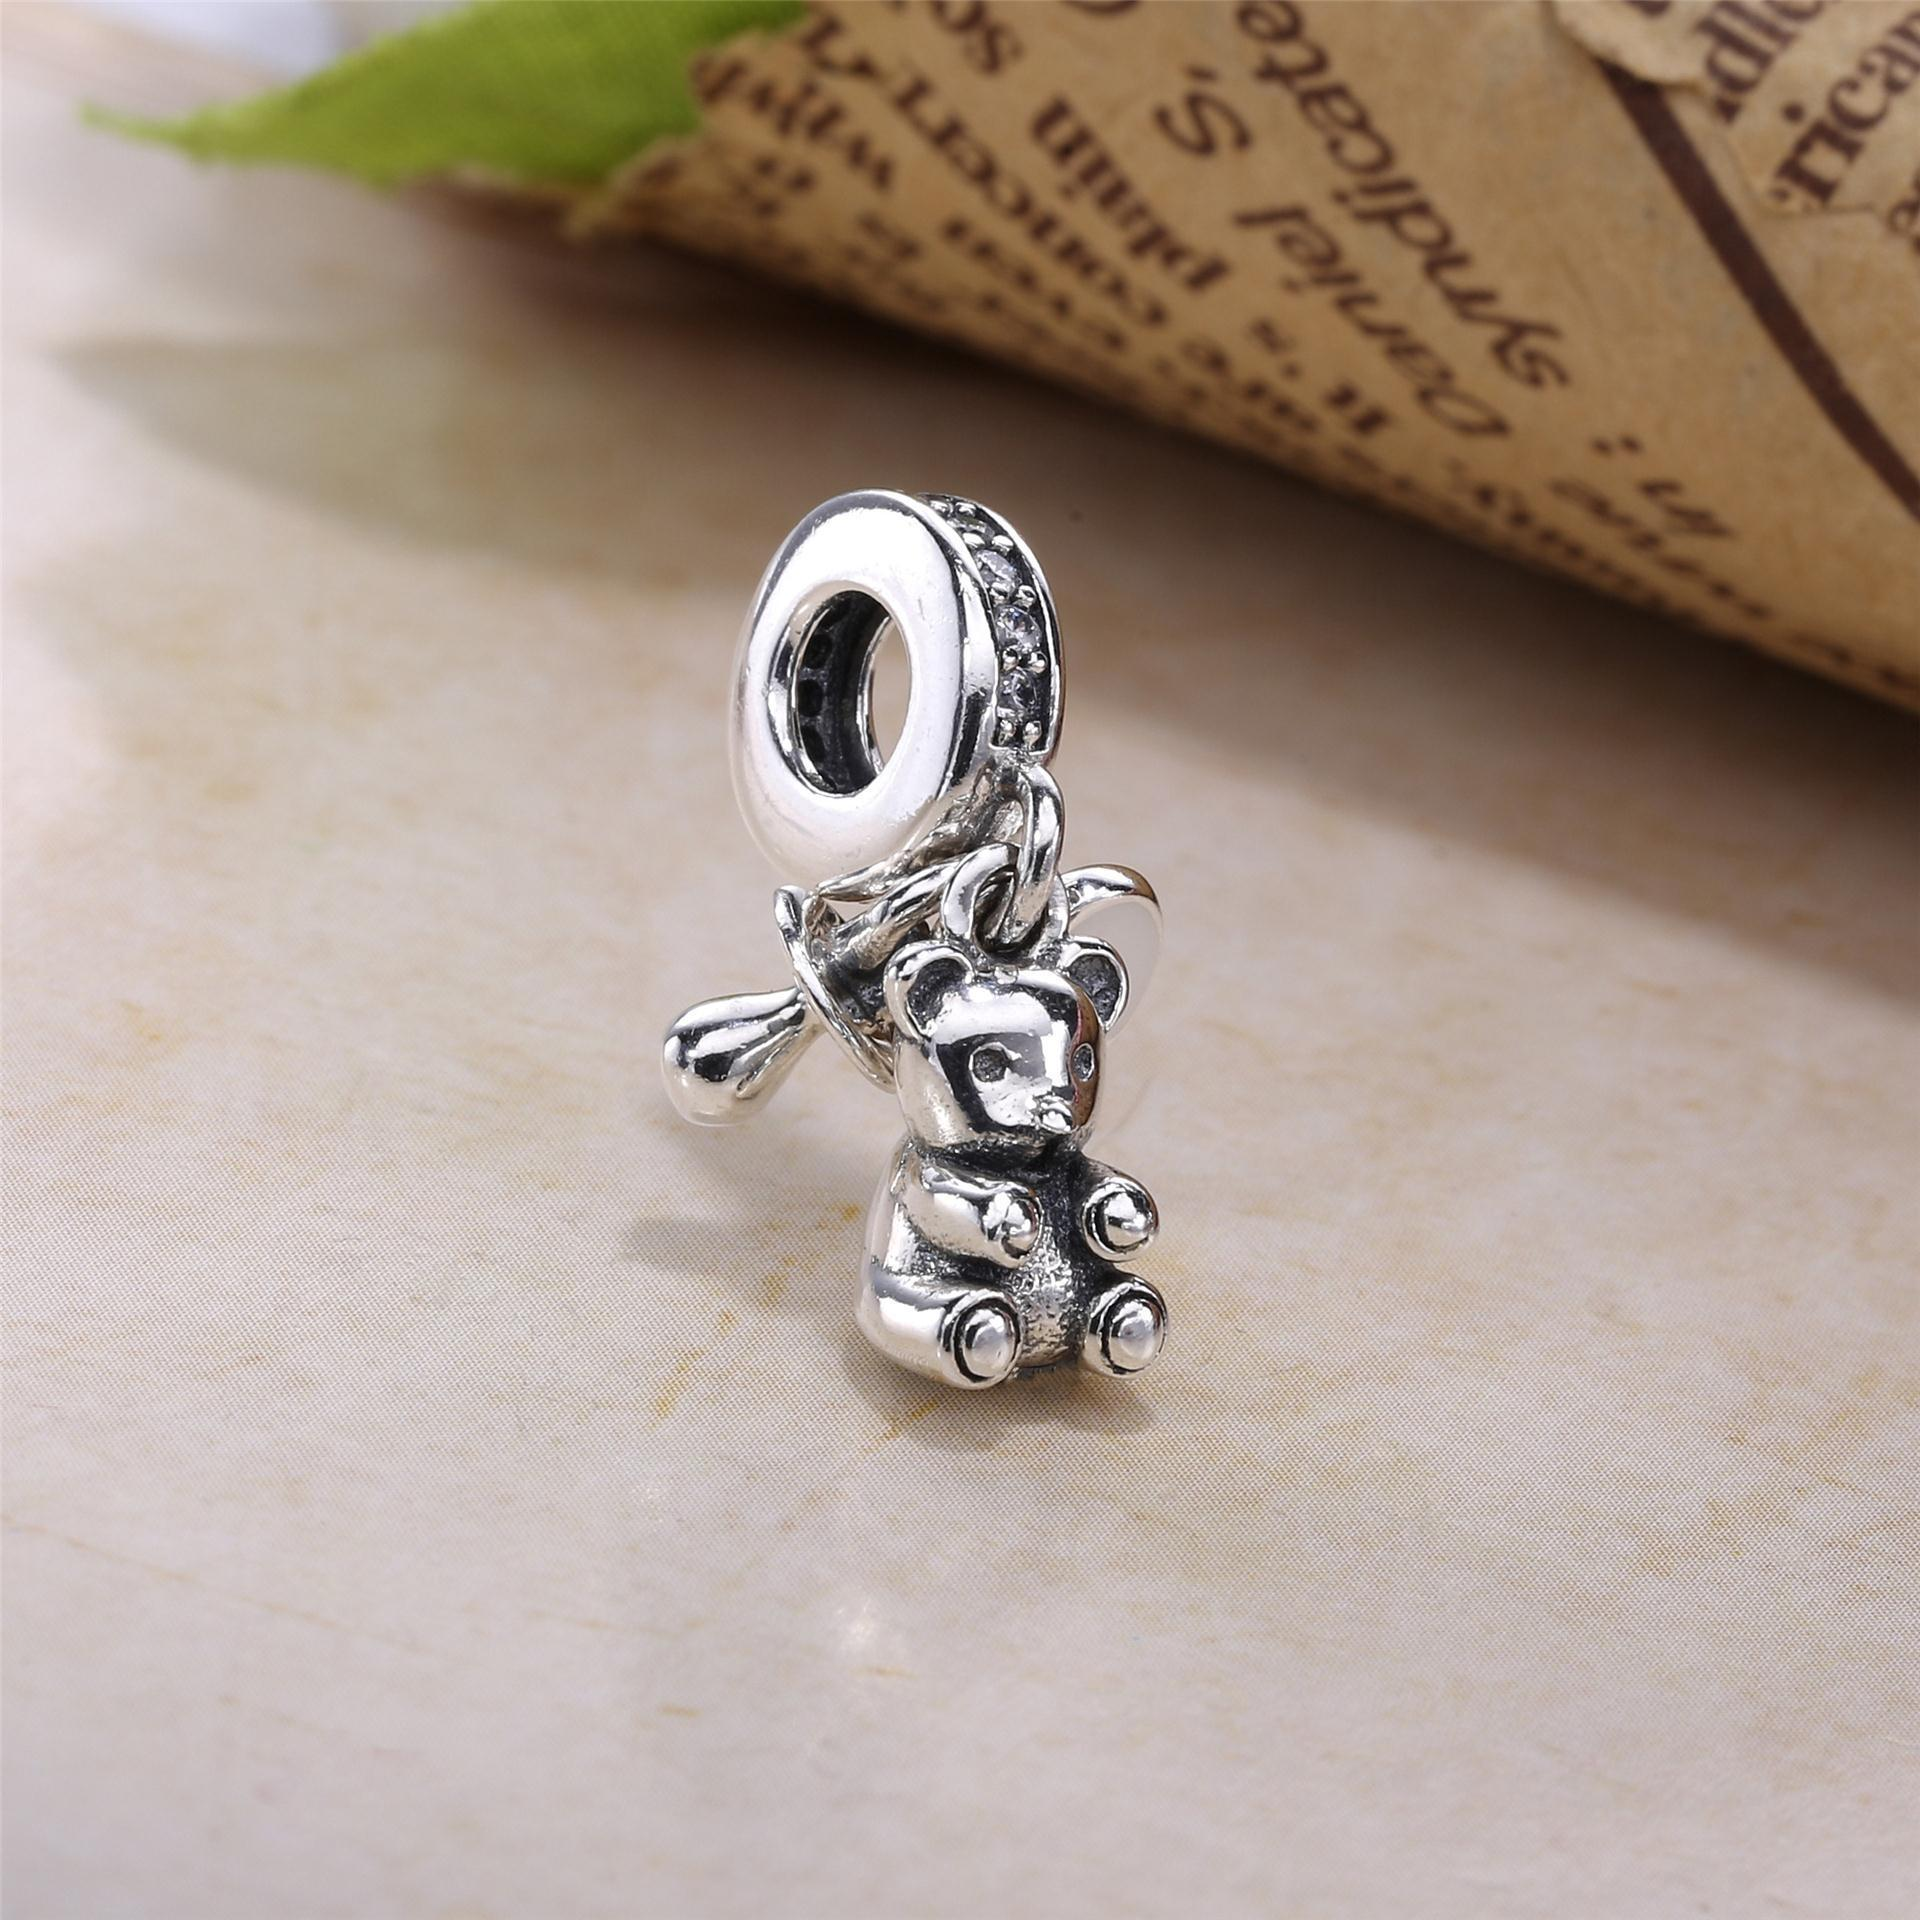 477a510bb ... new arrivals silver enamel cz baby treasures charms fit pandora  bracelets 925 sterling silver pacifier heart ...